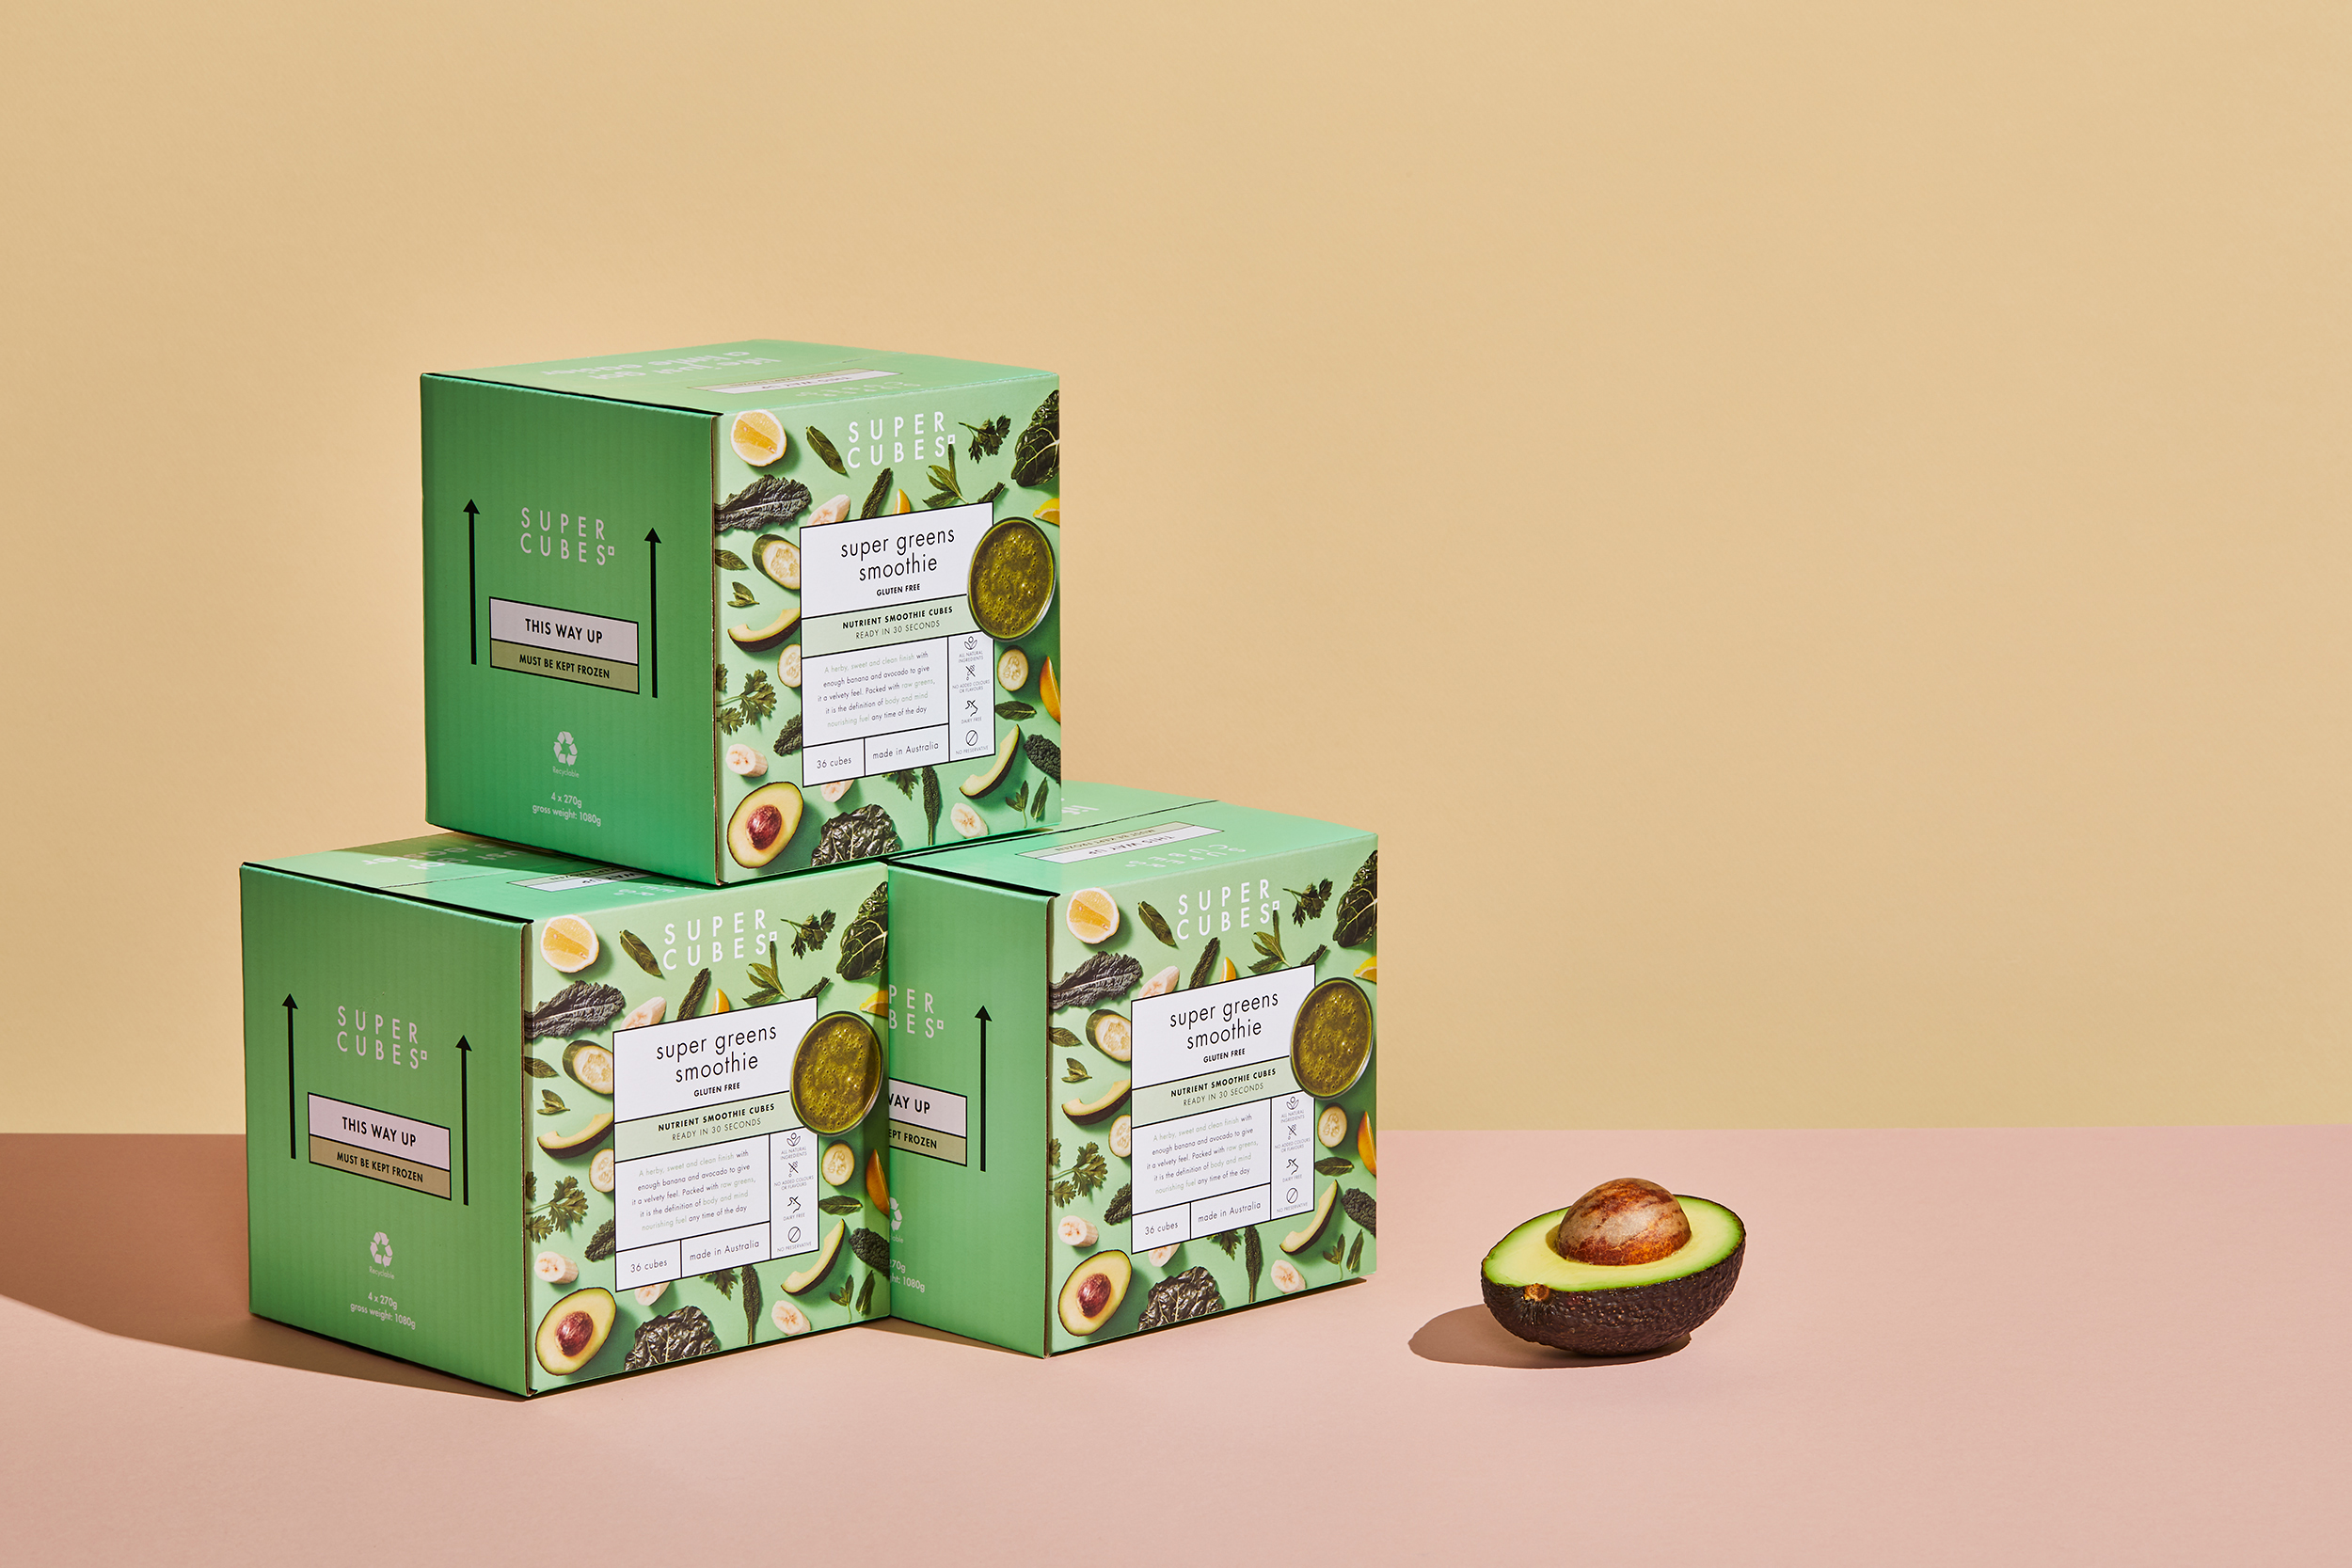 Super Cubes Packaging shot by Sydney advertising photographer Benito Martin